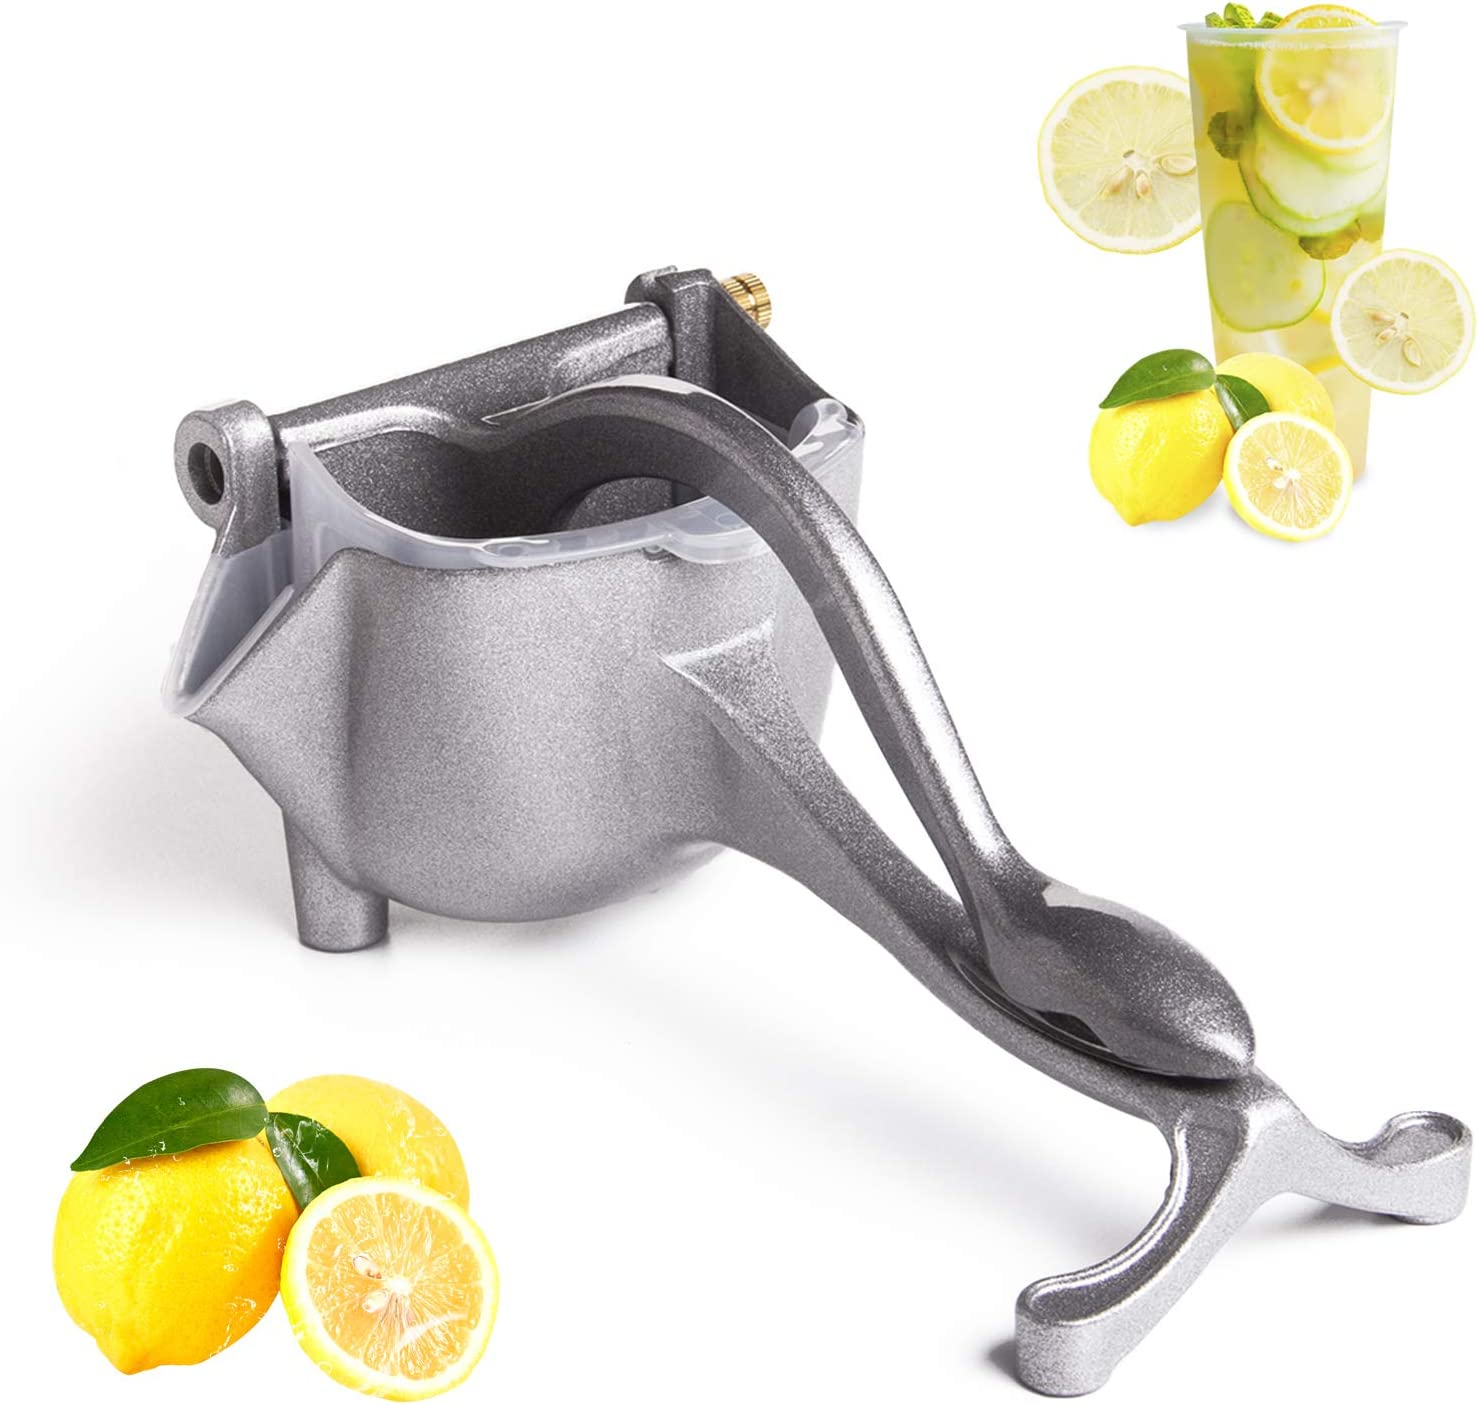 FIFOKICHO Manual juicer, Aluminum Alloy Fruit Squeezer, Best Gift for Mother of Heavy Duty Juice Press Squeezer for Orange, and Lemon